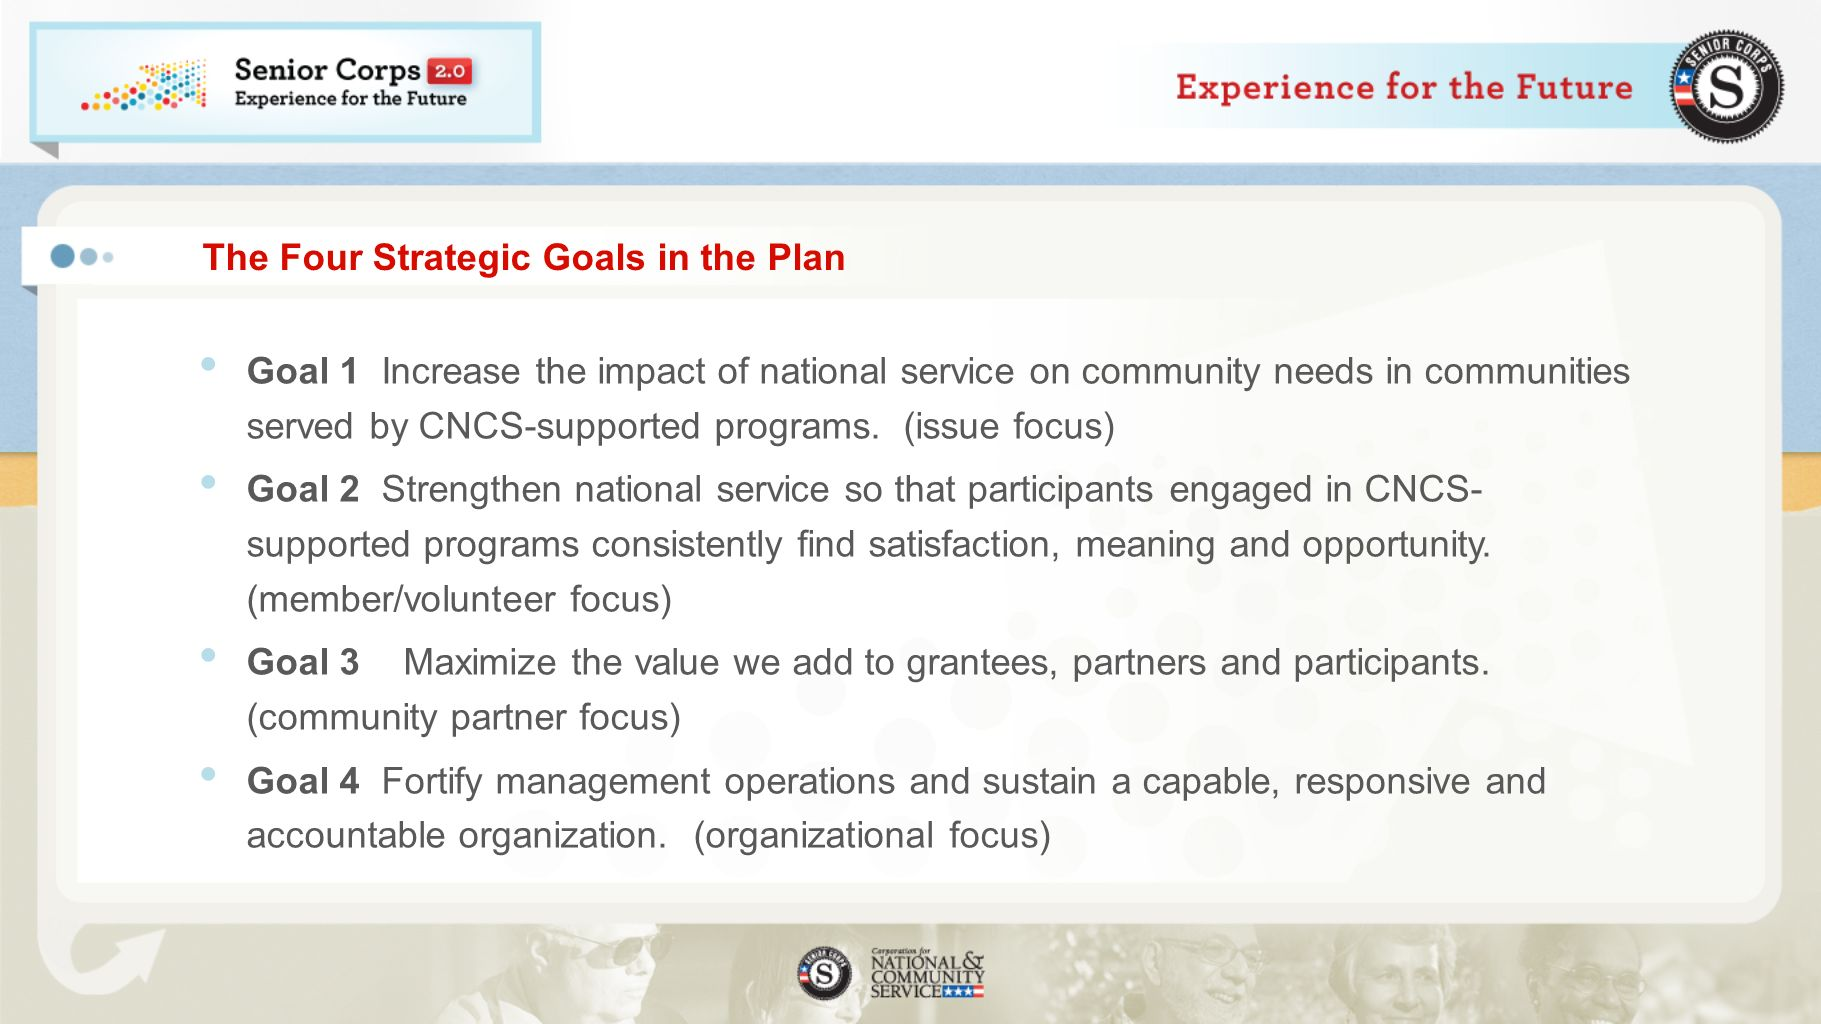 From Strategic Plan to Performance Measures We collected input and considered: Which measures enable us to tell the best story about the impact of national service Where we have the most confidence about measureable impact Where our grantees and sponsors do most of their work 42 Priority Measures in the 2011-2015 Strategic Plan as a result of dozens of community meetings and public comments Focused Subset of 16 Agency- Wide Priority Measures Across our 4 Strategic Goals and 6 Focus Areas